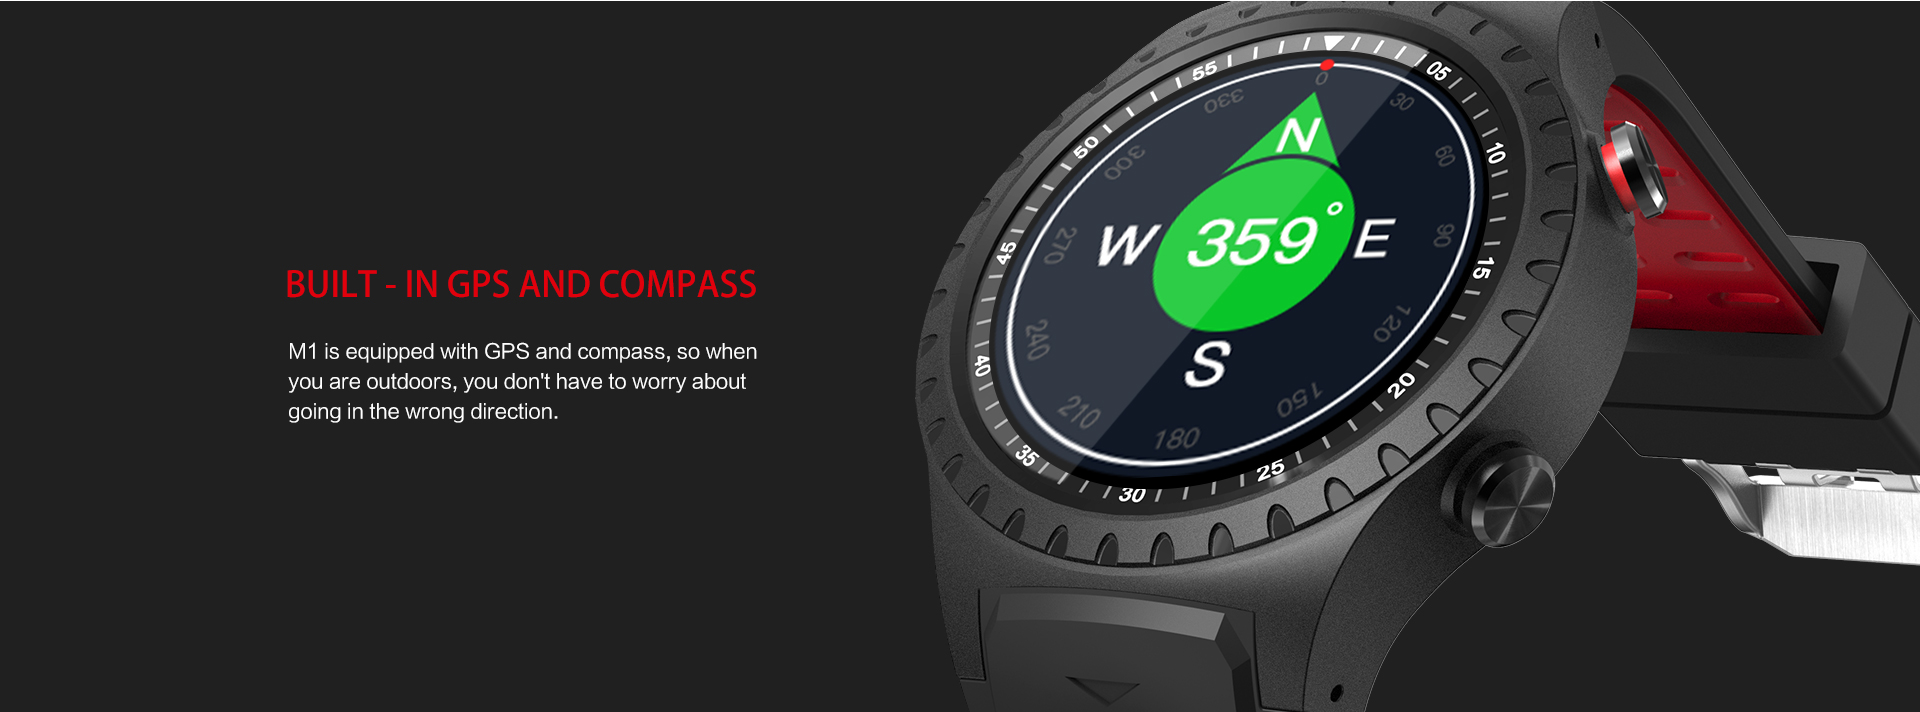 Hot sale GPS Sport watch with pedometer BT3.0+4.0 weather and message remind